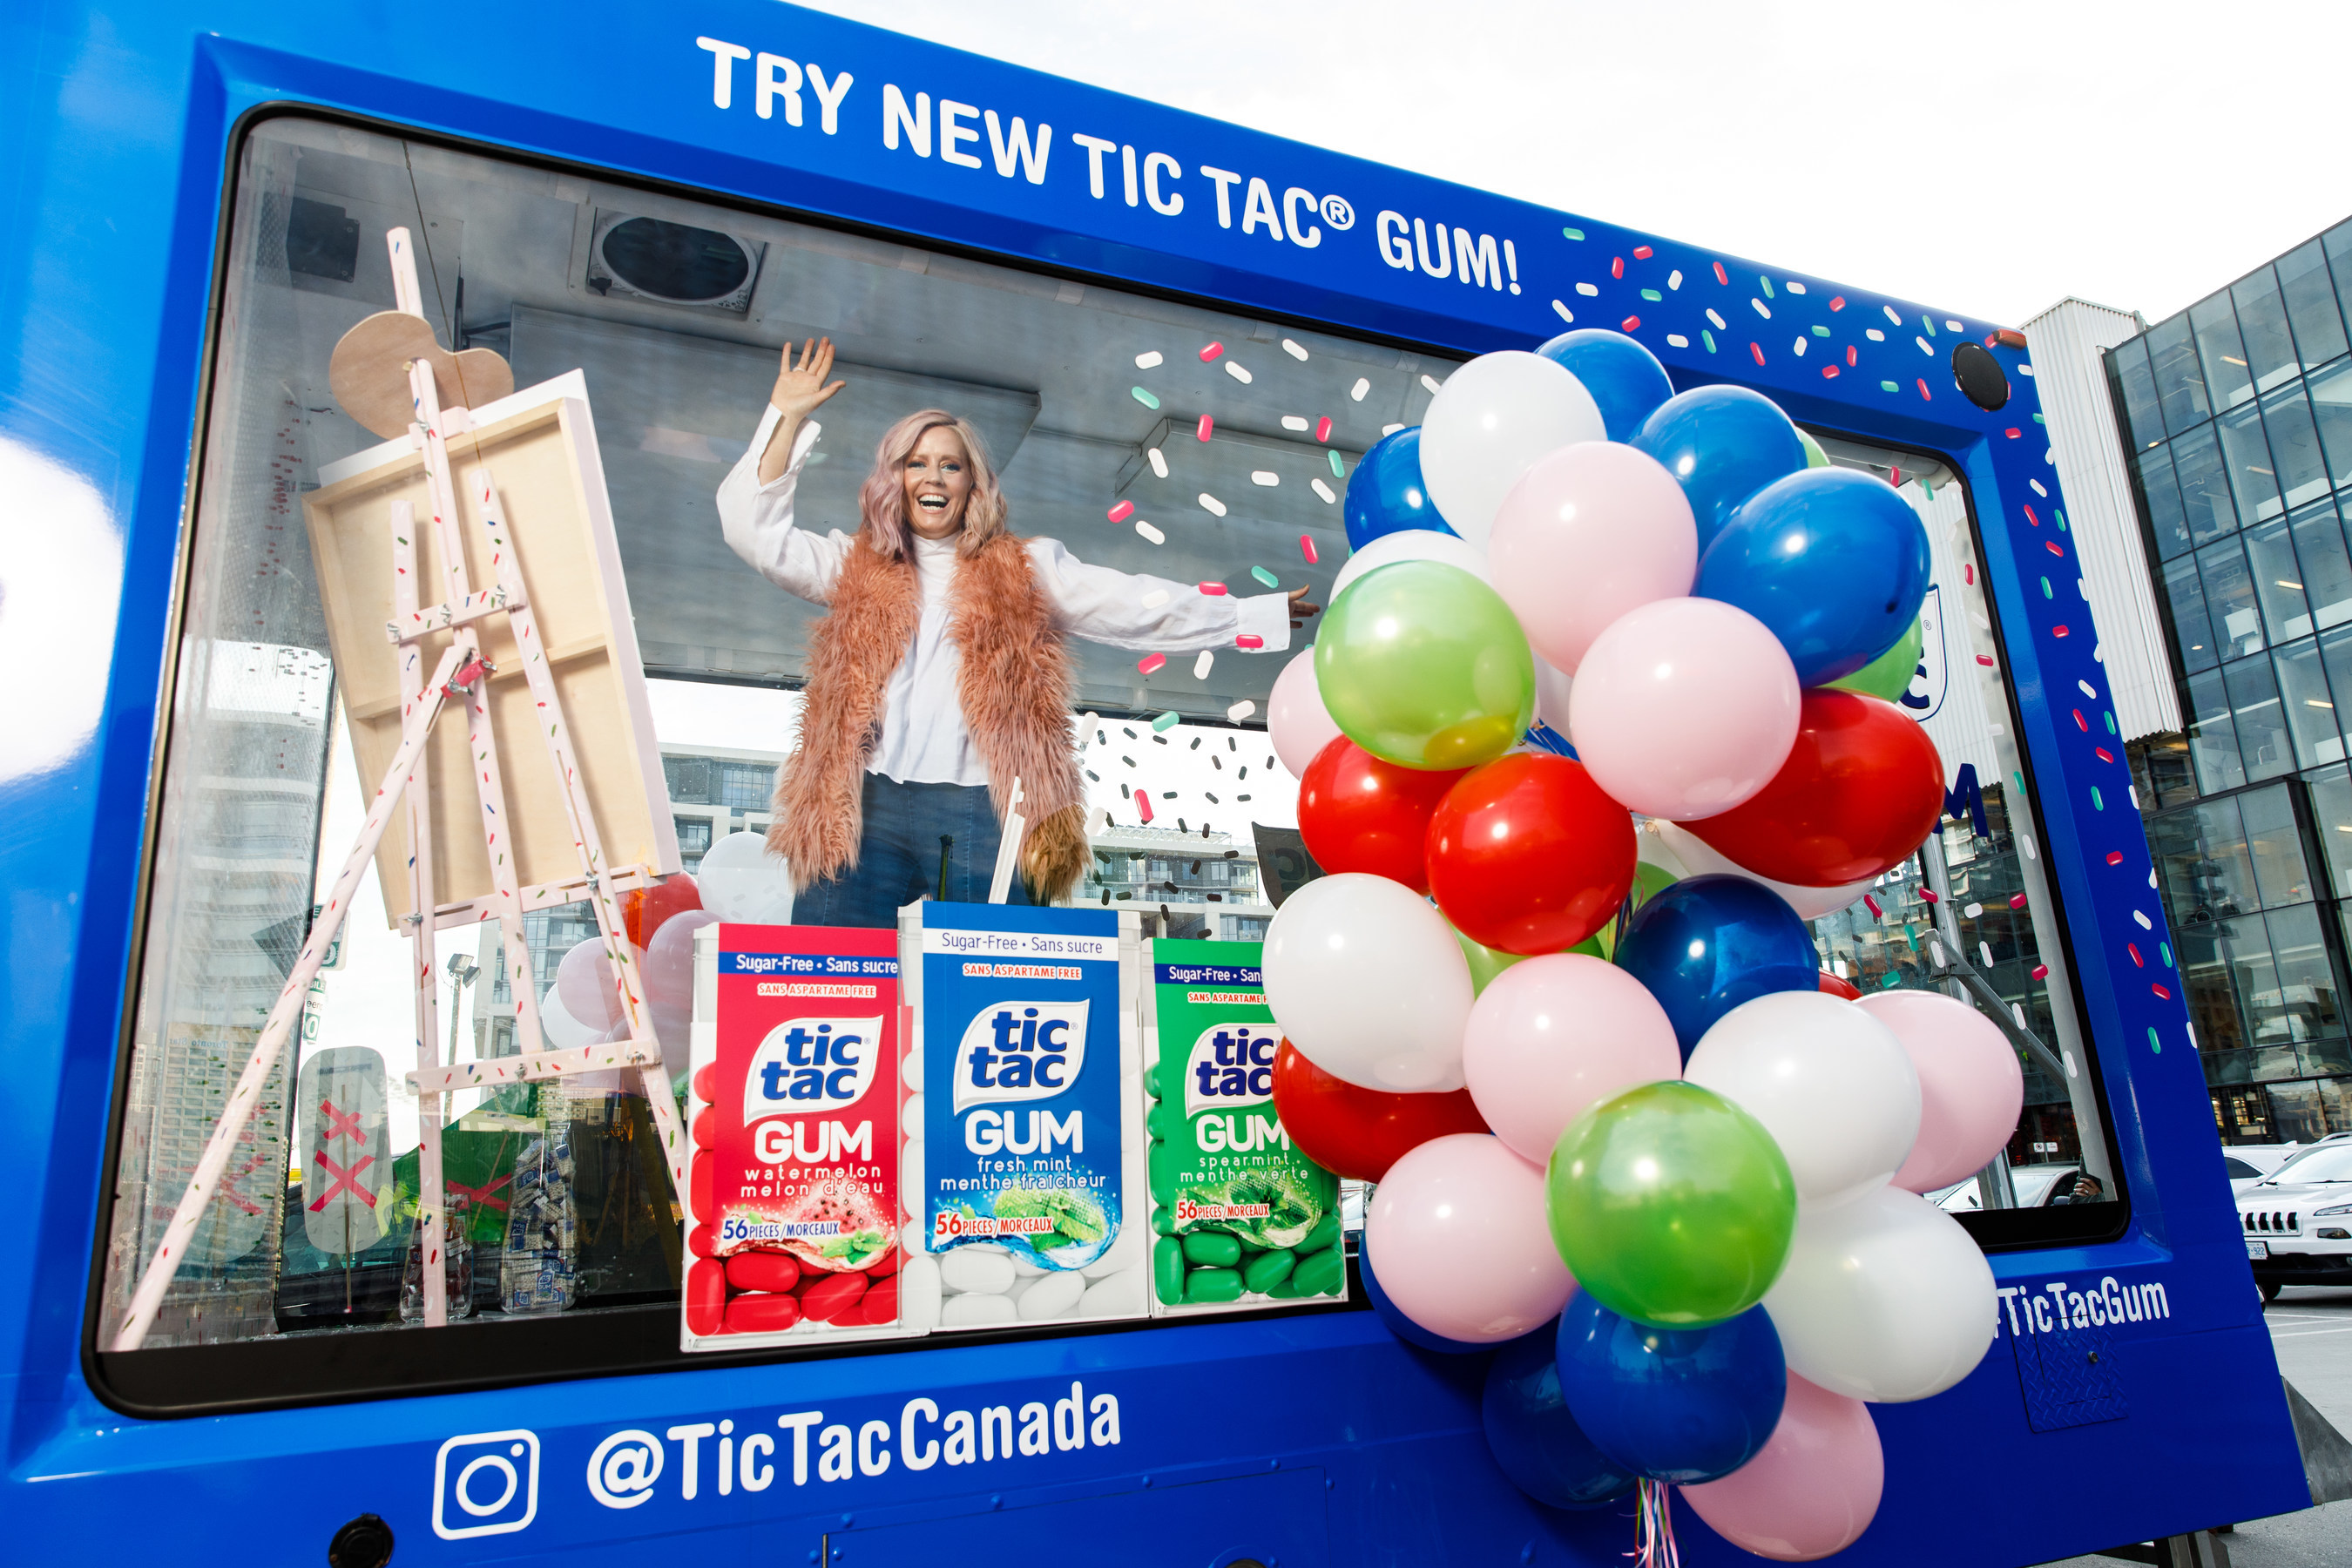 9aa52cf589 Tic Tac Canada Tic Tac  GUM hits Canada just in time for Nationa.jpg p publish